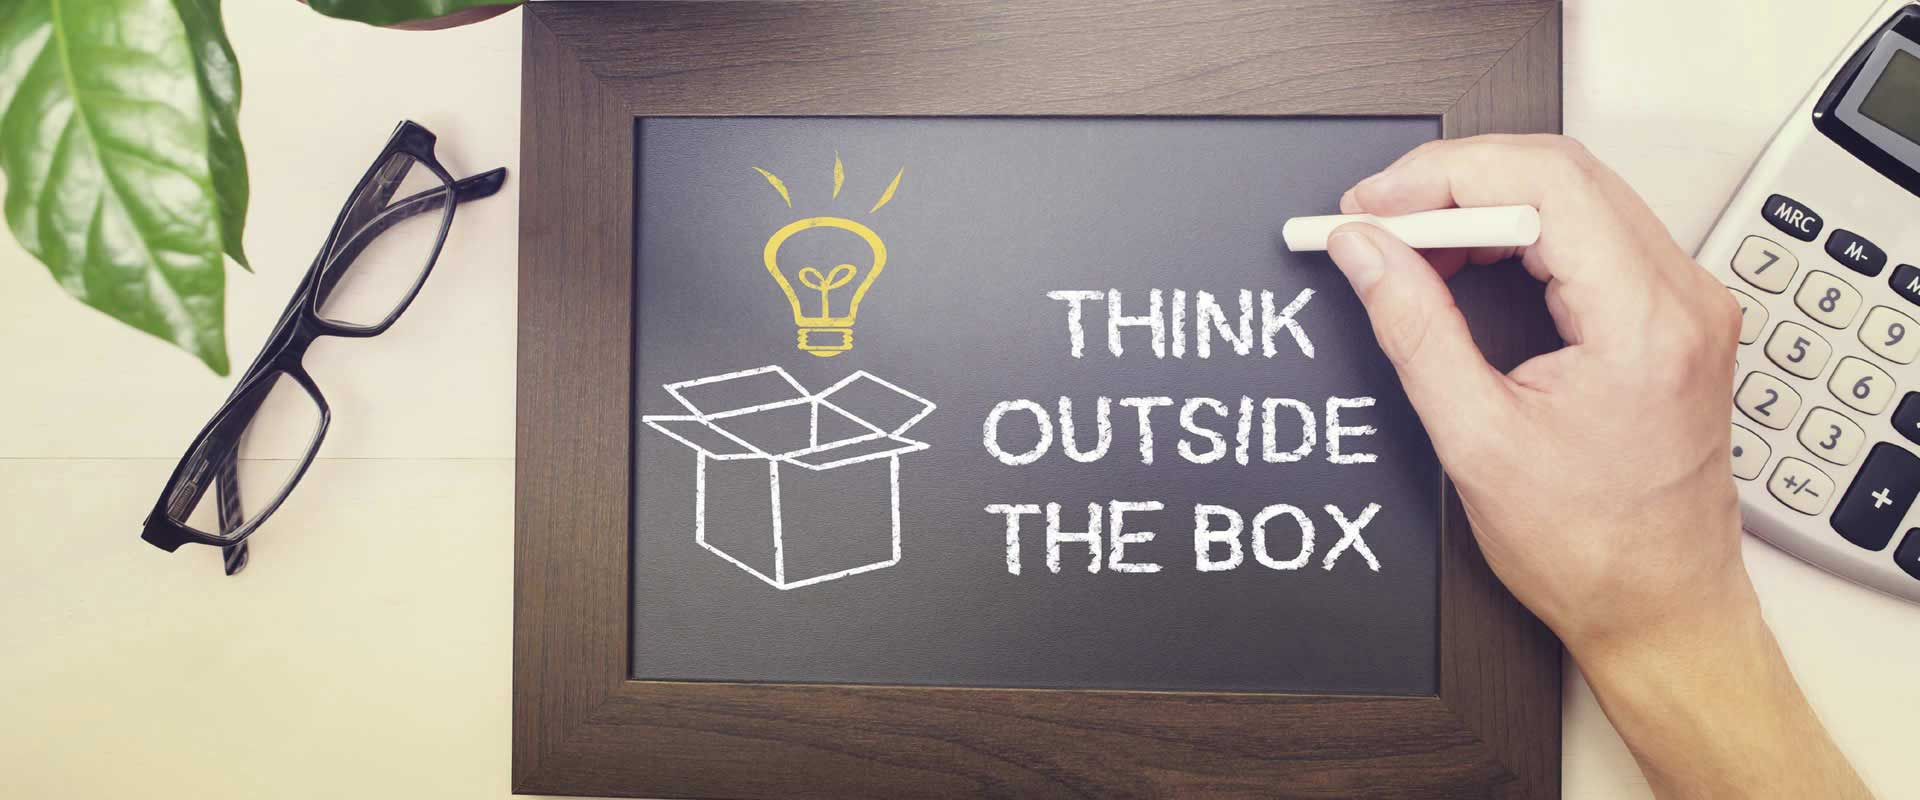 THINKING OUT OF THE BOX… Is it that easy?